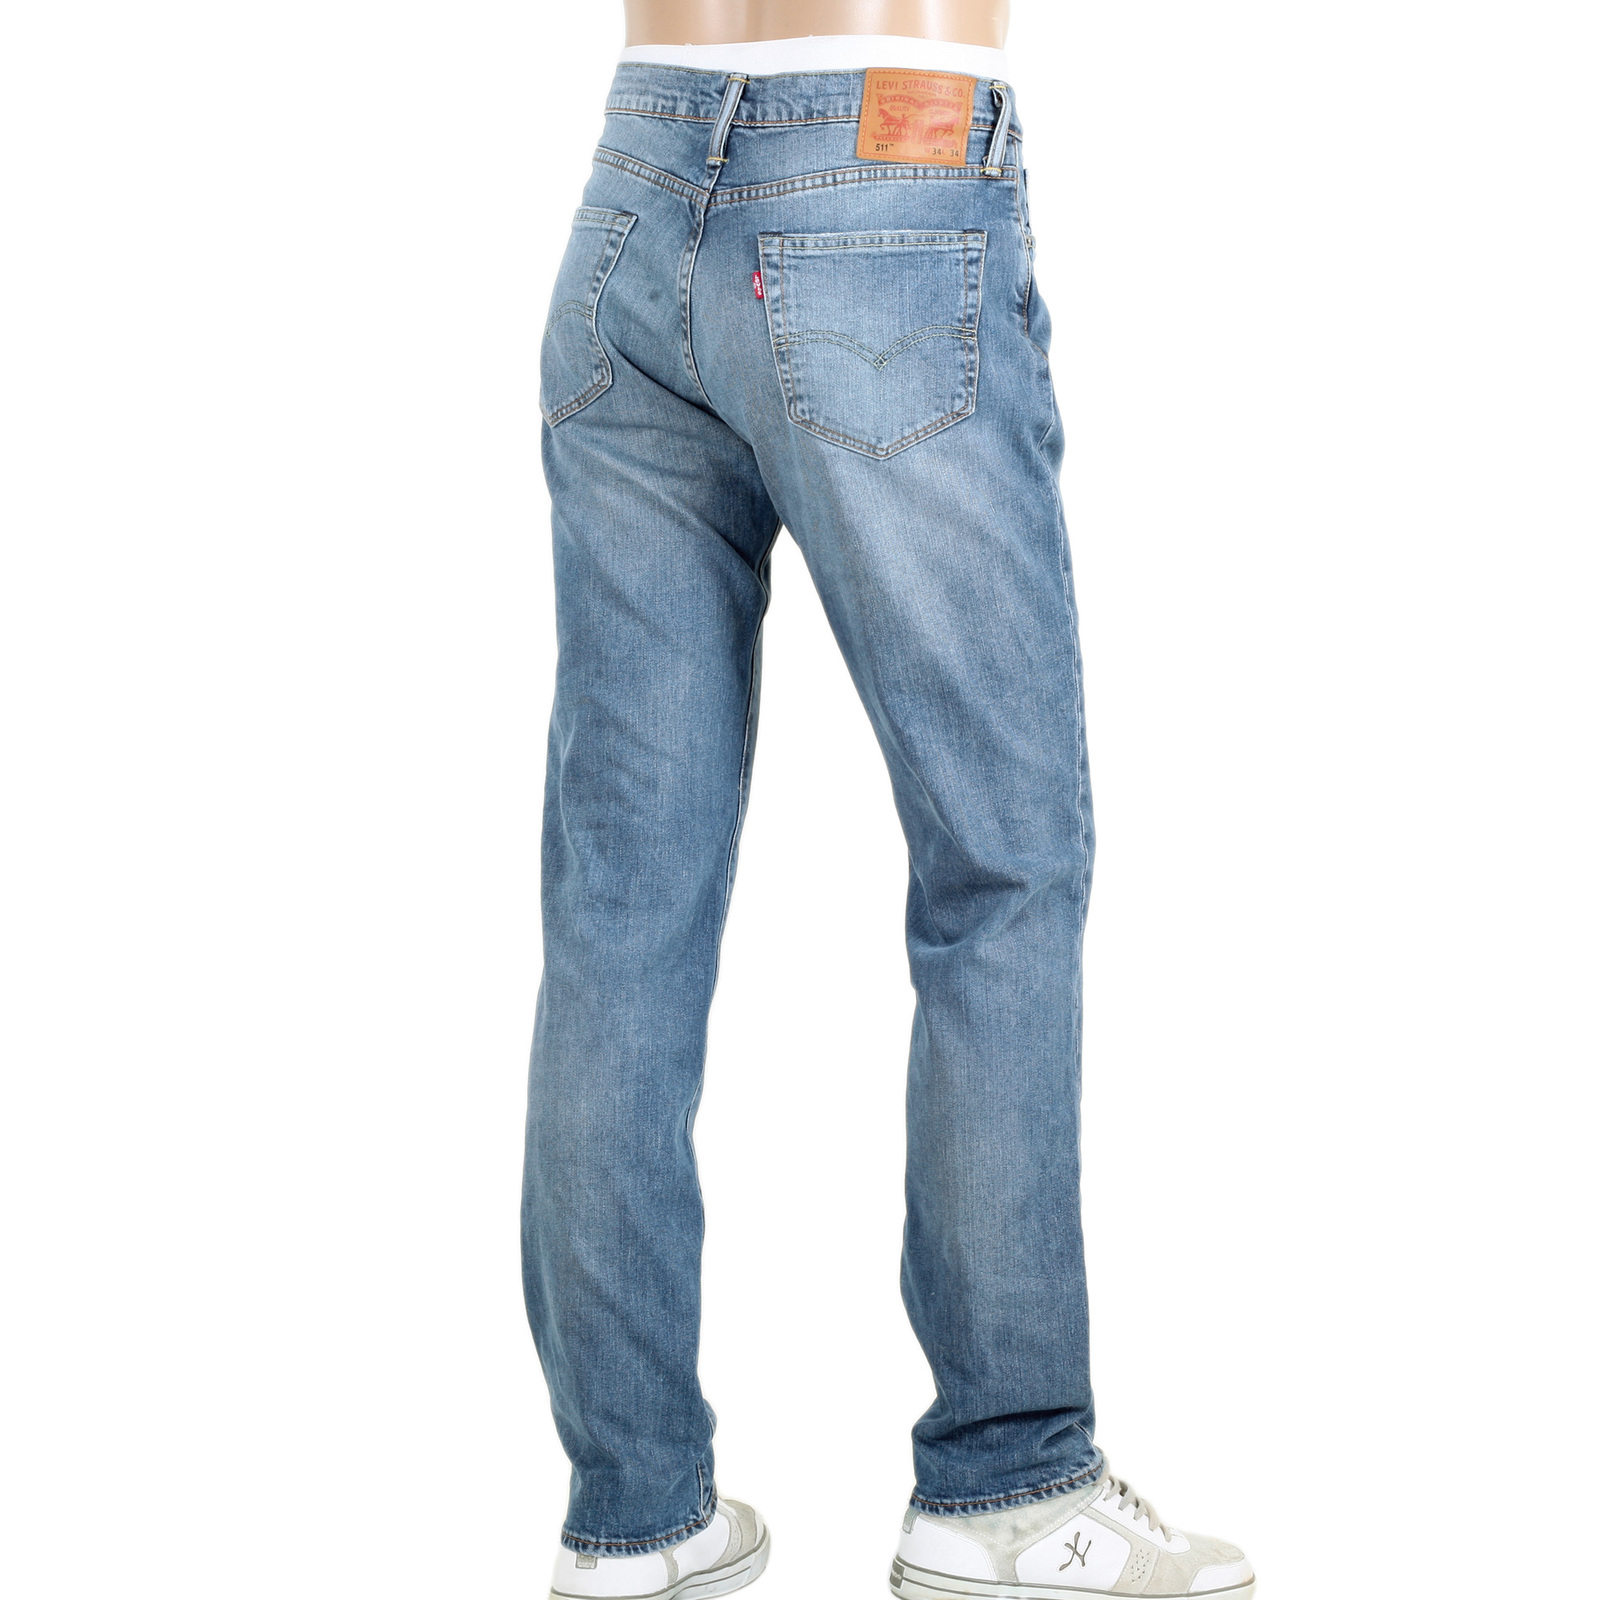 mens lower waist levis 511 slim fit jeans in light blue. Black Bedroom Furniture Sets. Home Design Ideas